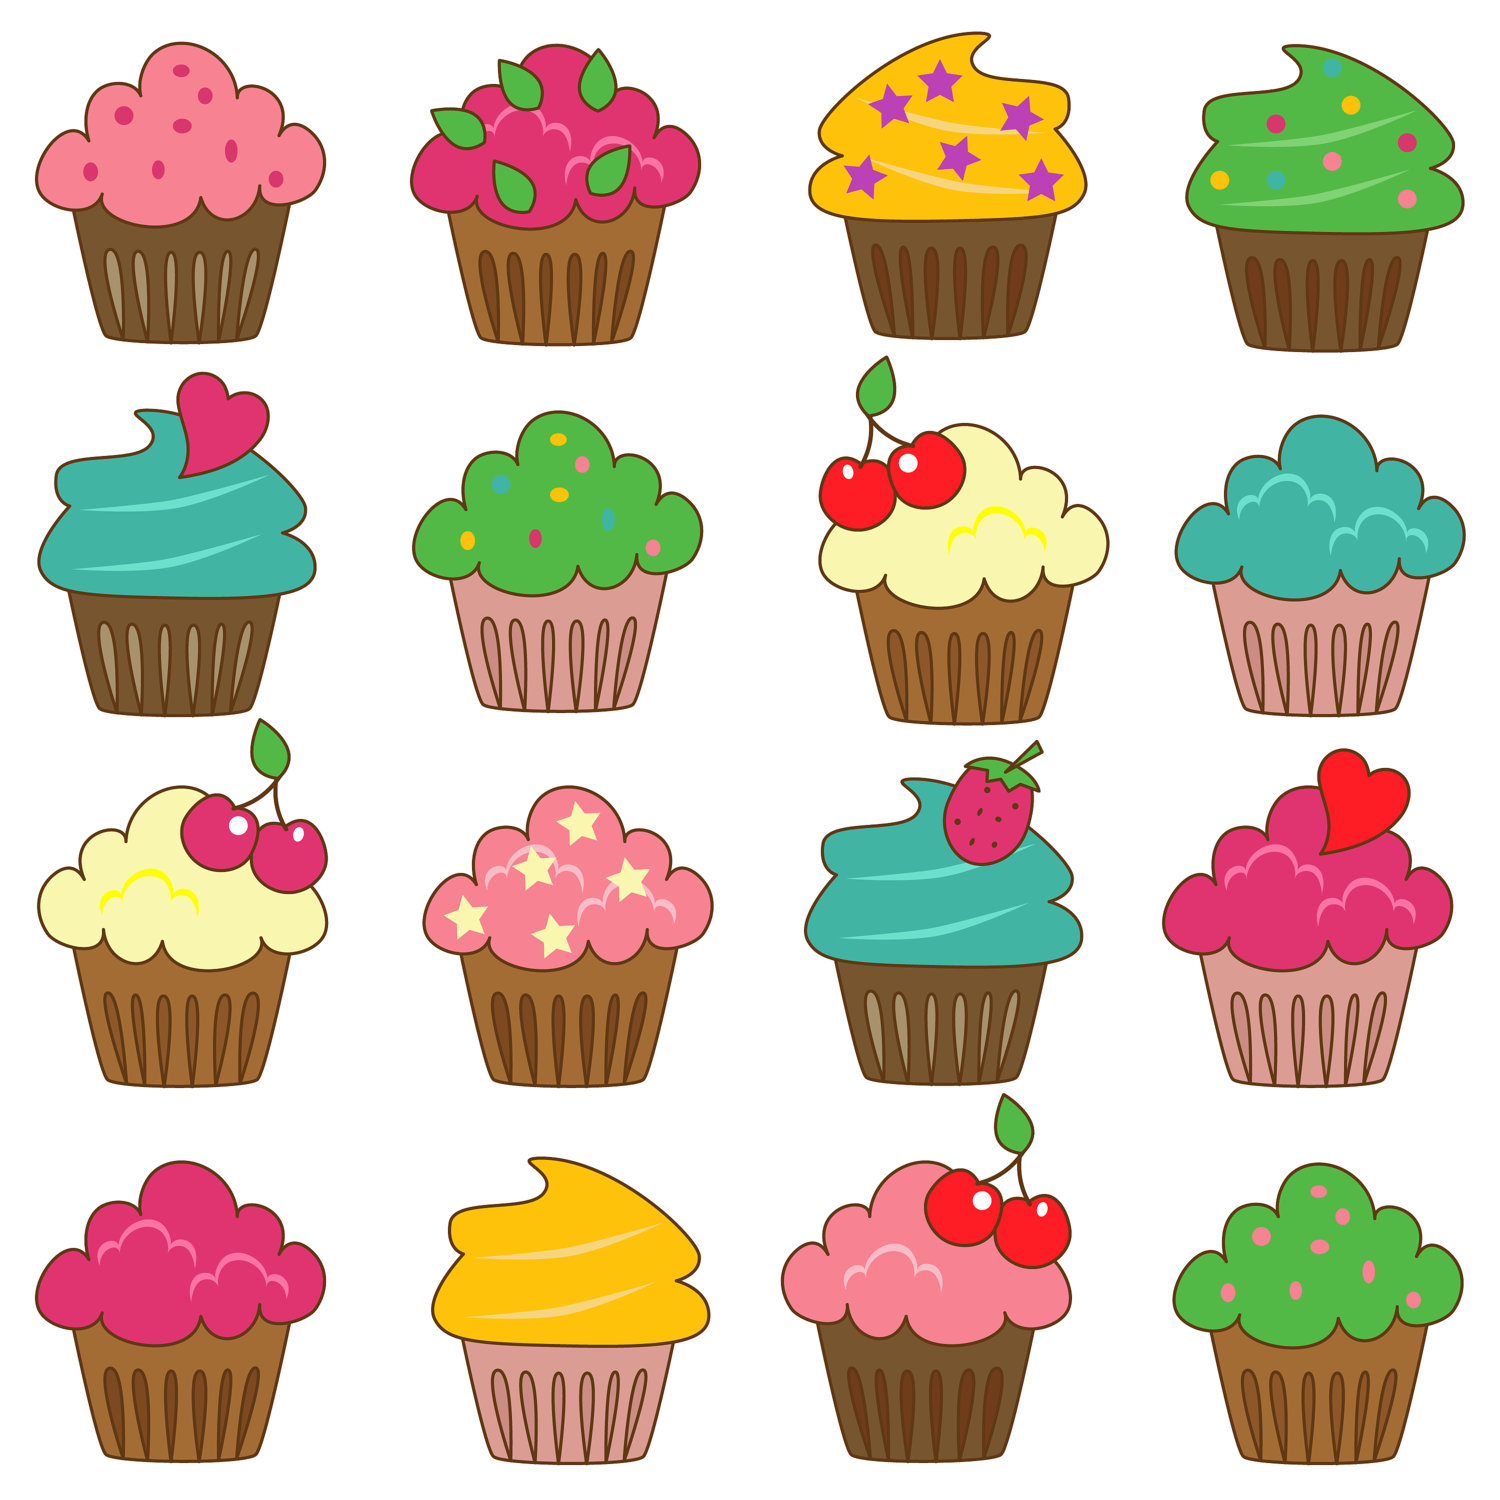 Best Cupcake Images : Cartoon Cupcake Clipart - Cliparts.co